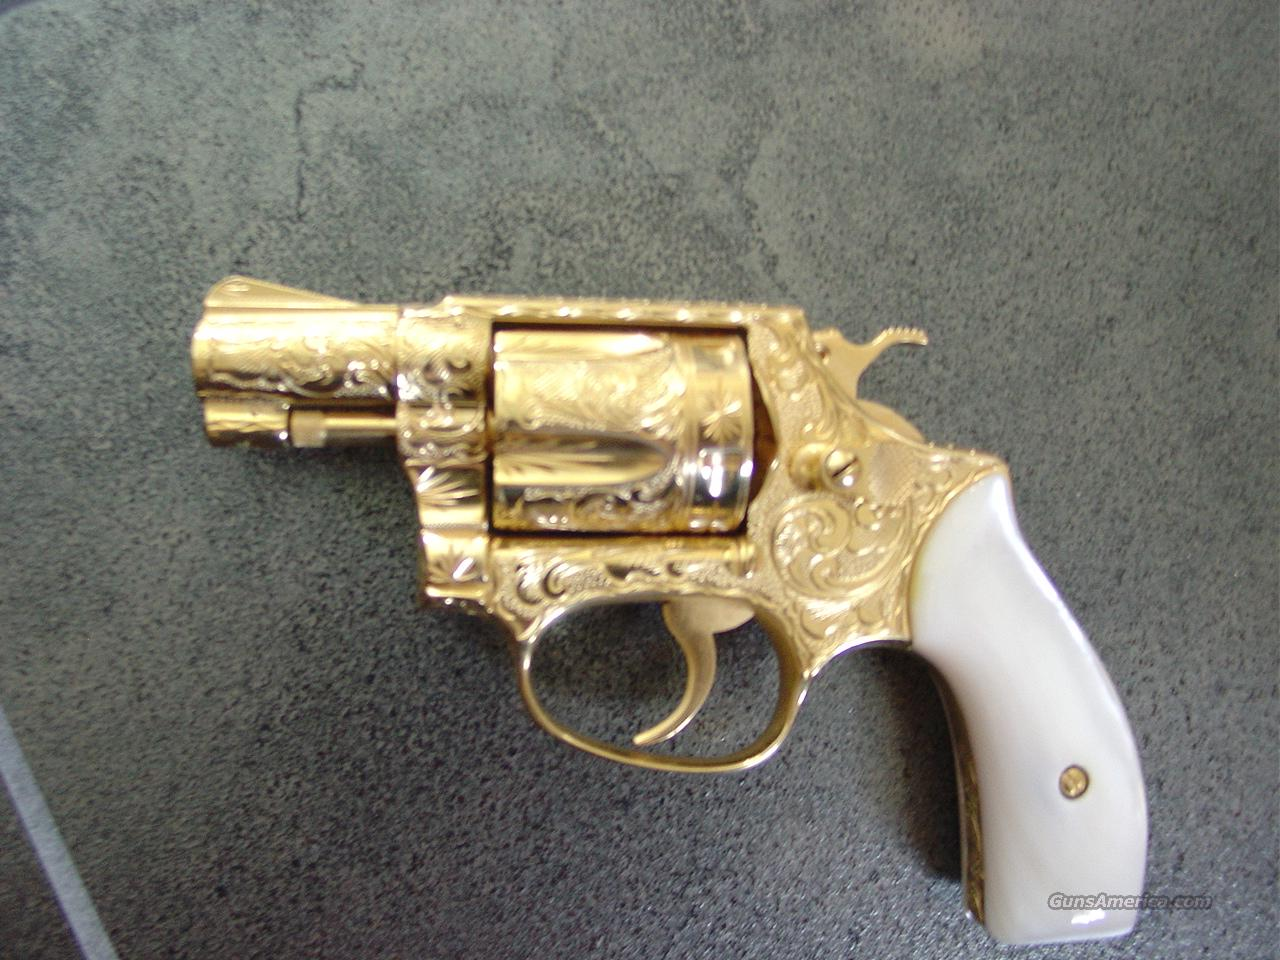 "Smith & Wesson,Model 36 no dash,1 3/4""barrel,24k plated,100%+ master scroll engraved by Jeff Flannery,faux MOP grips,awesome showpiece,38 special  Guns > Pistols > Smith & Wesson Revolvers > Pocket Pistols"